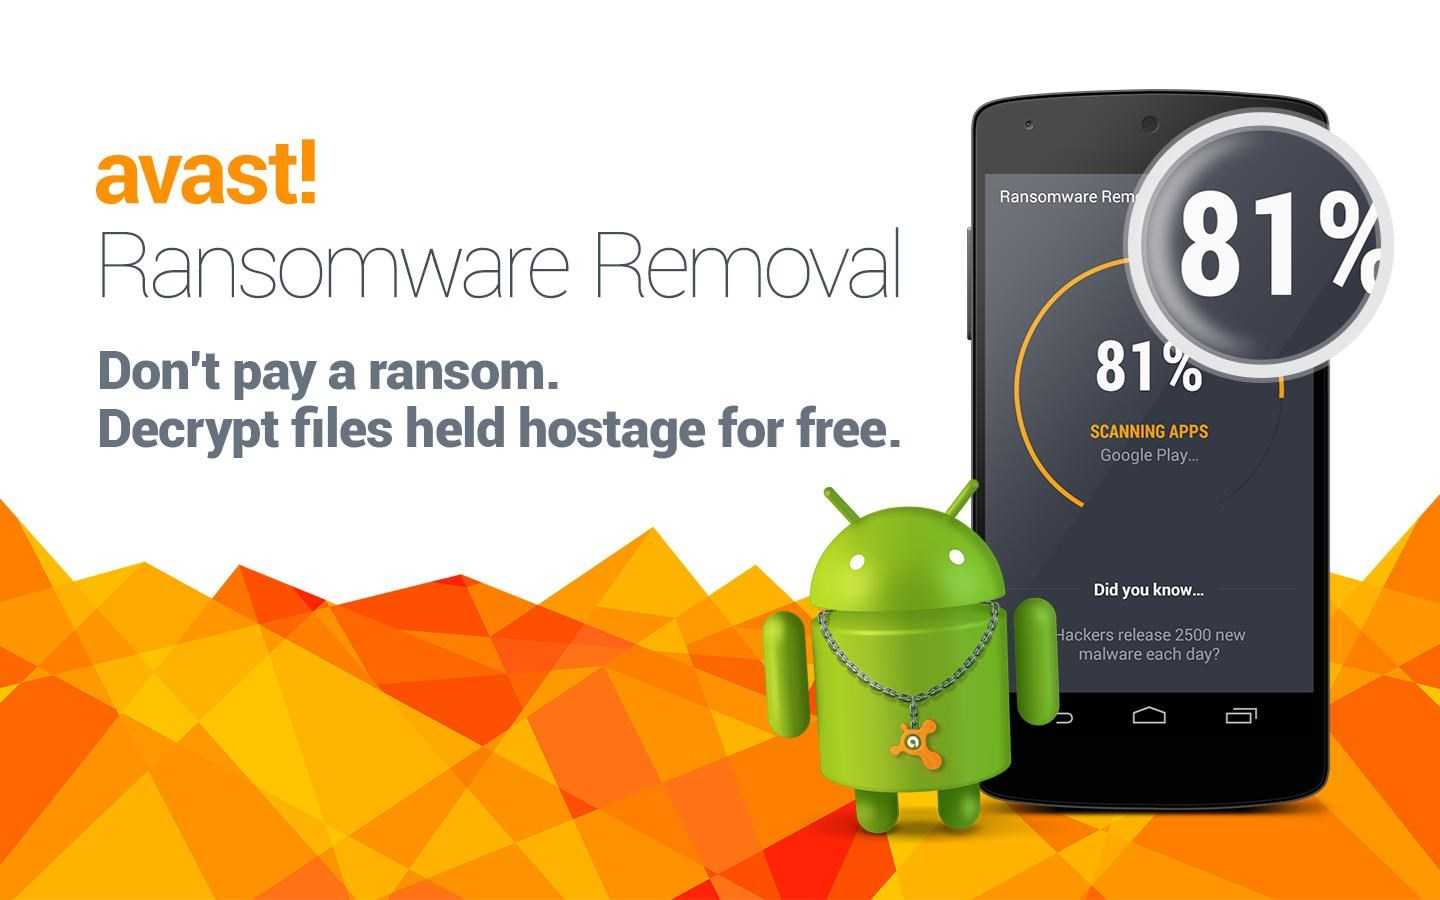 avast ransomware removal apk